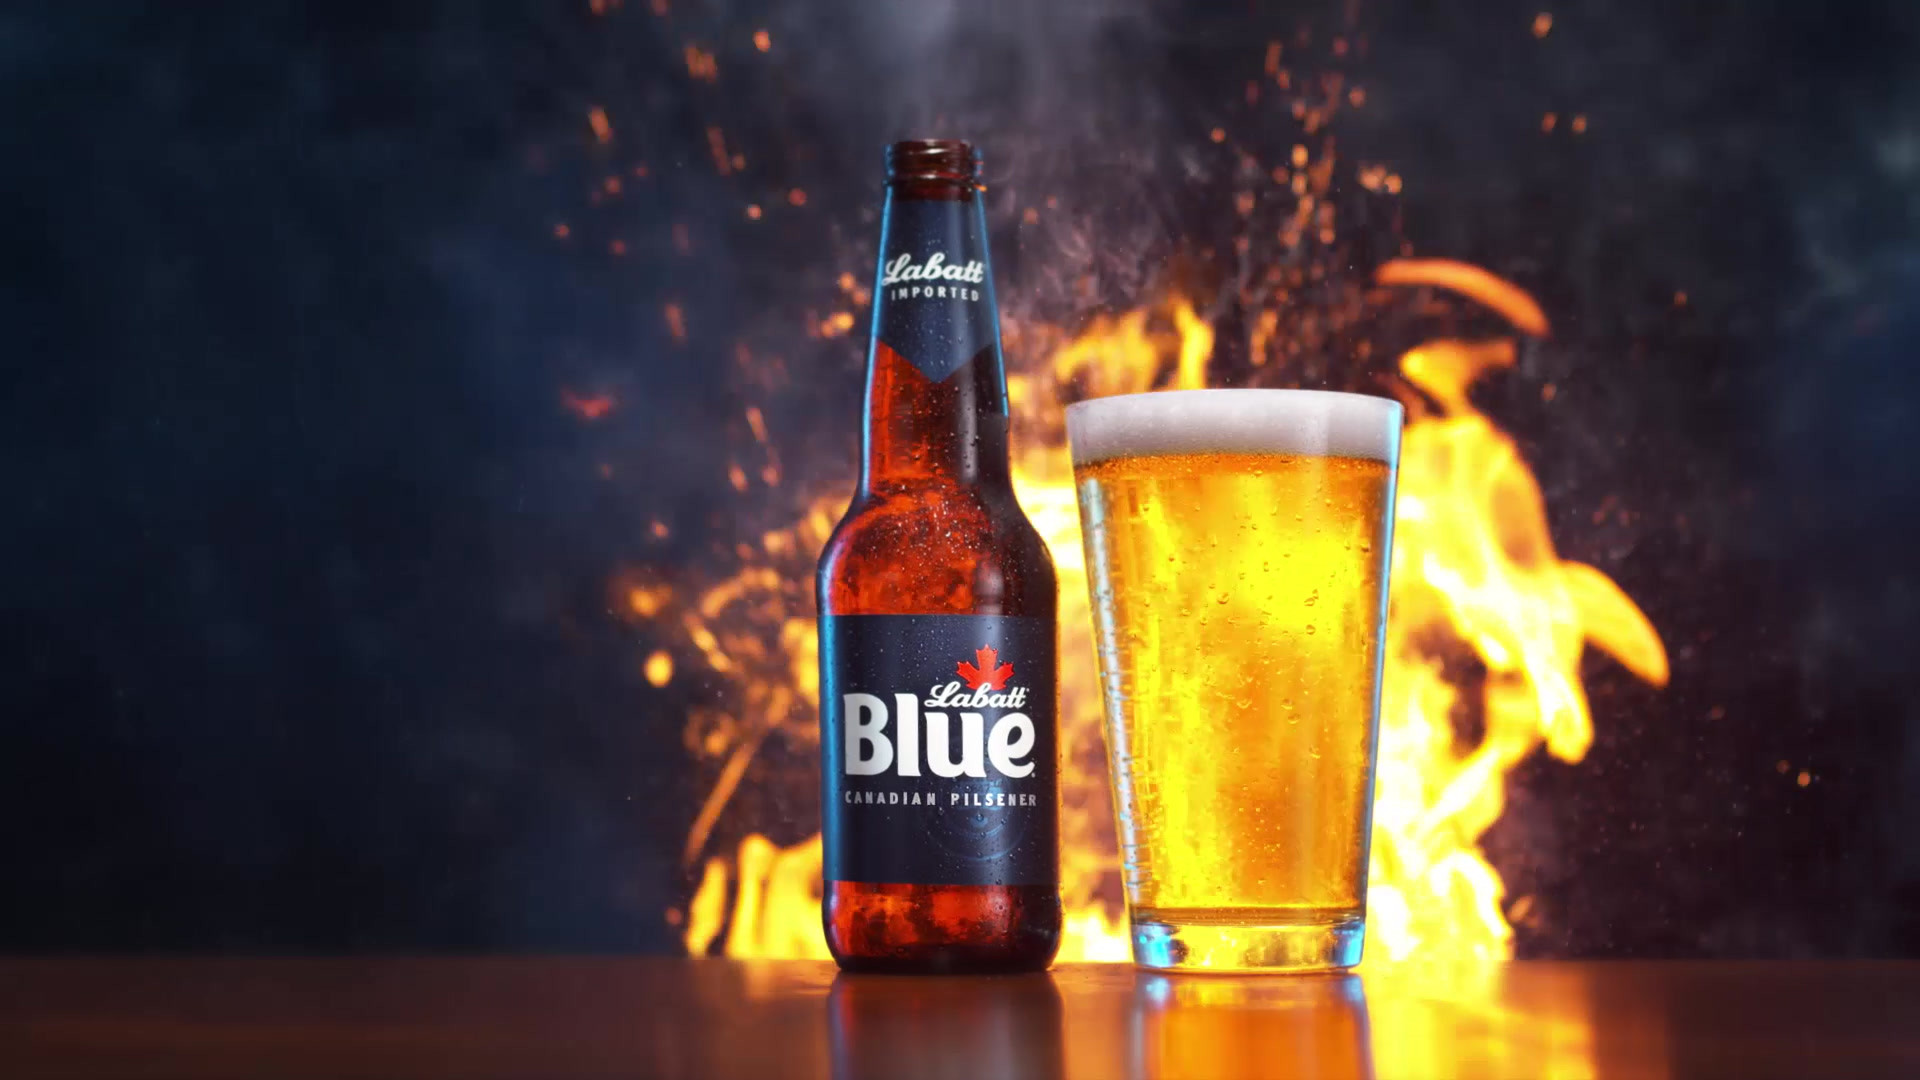 Fire. Smoke. Beer. Totally uninteresting shoot.